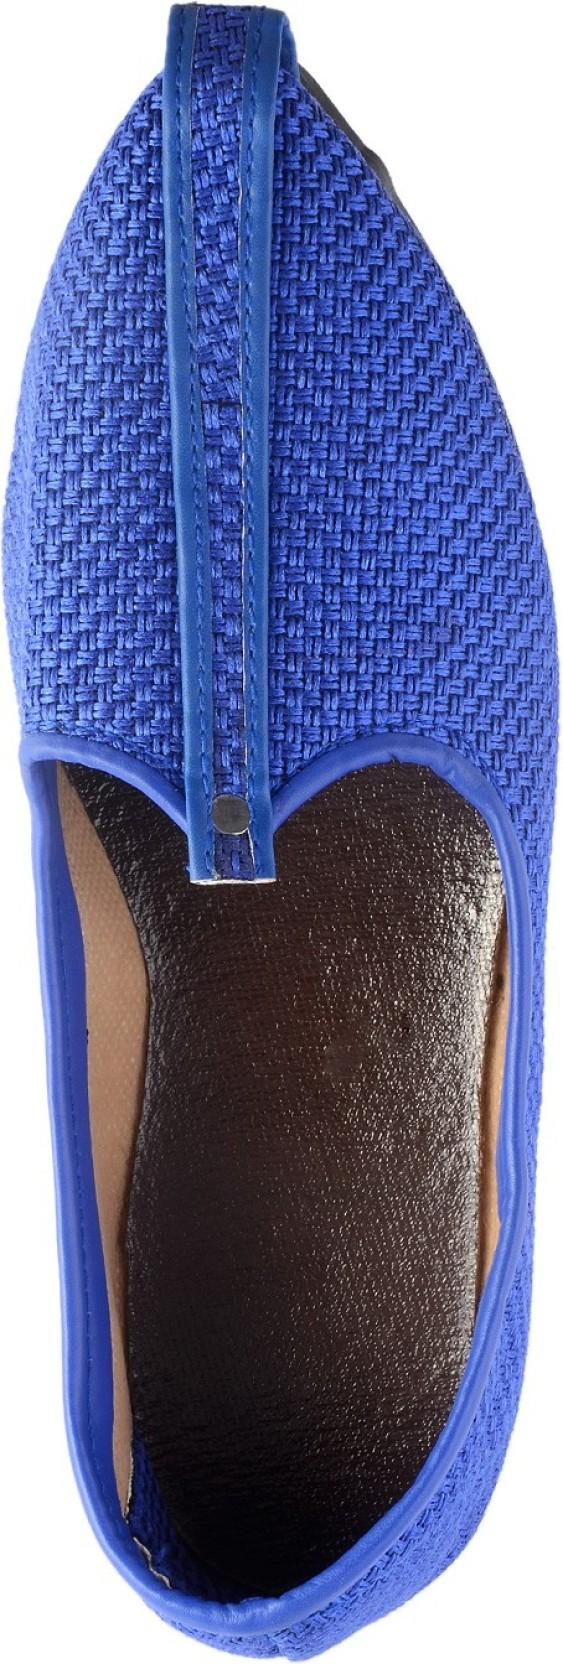 Alex Brown Hand Crafted Casuals(Blue)